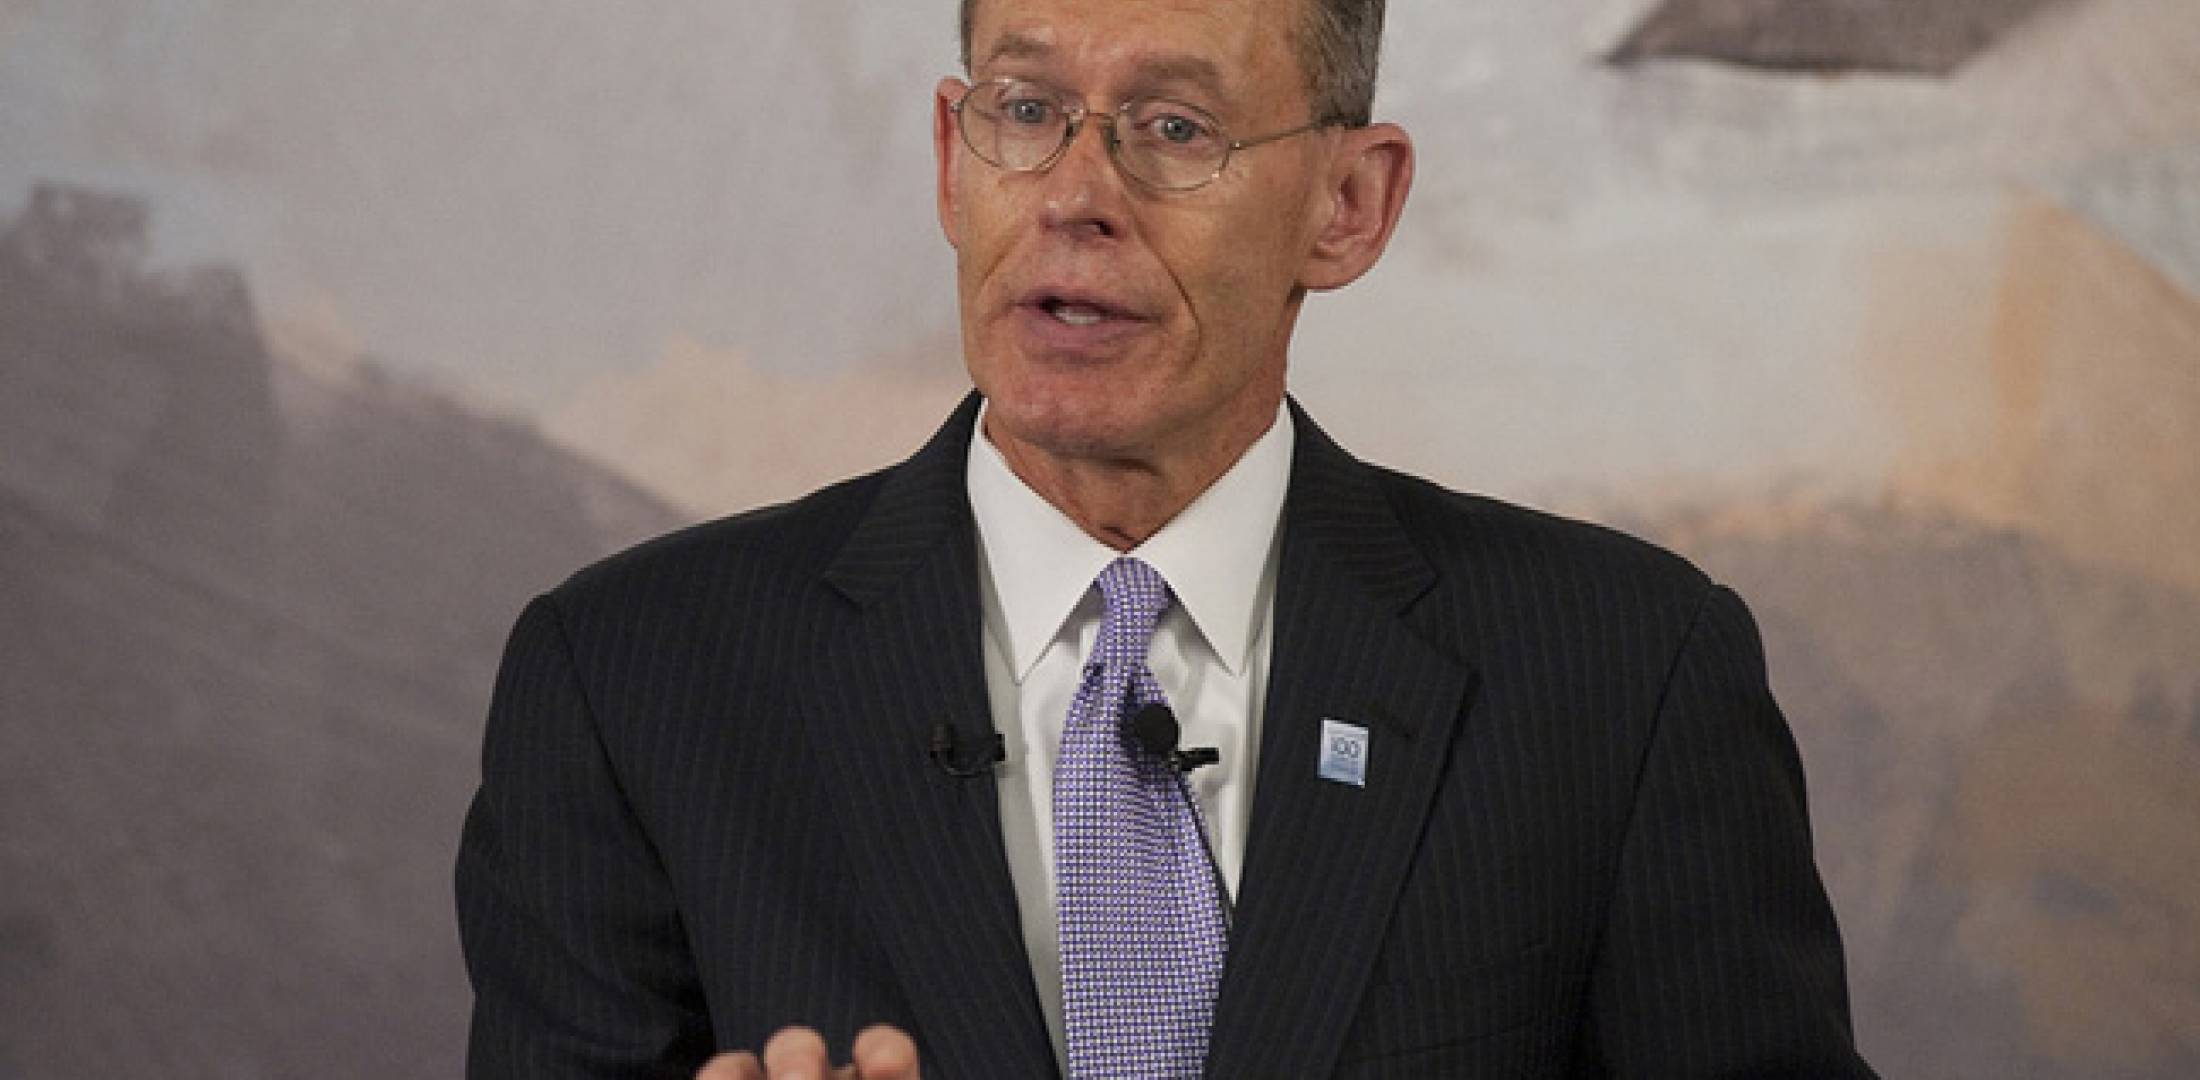 Lockheed Martin CEO Bob Stevens said government spending cuts threatened by sequestration will force the company to modify its contracts with suppliers, leading to untold consequences. (Photo: Lockheed Martin)